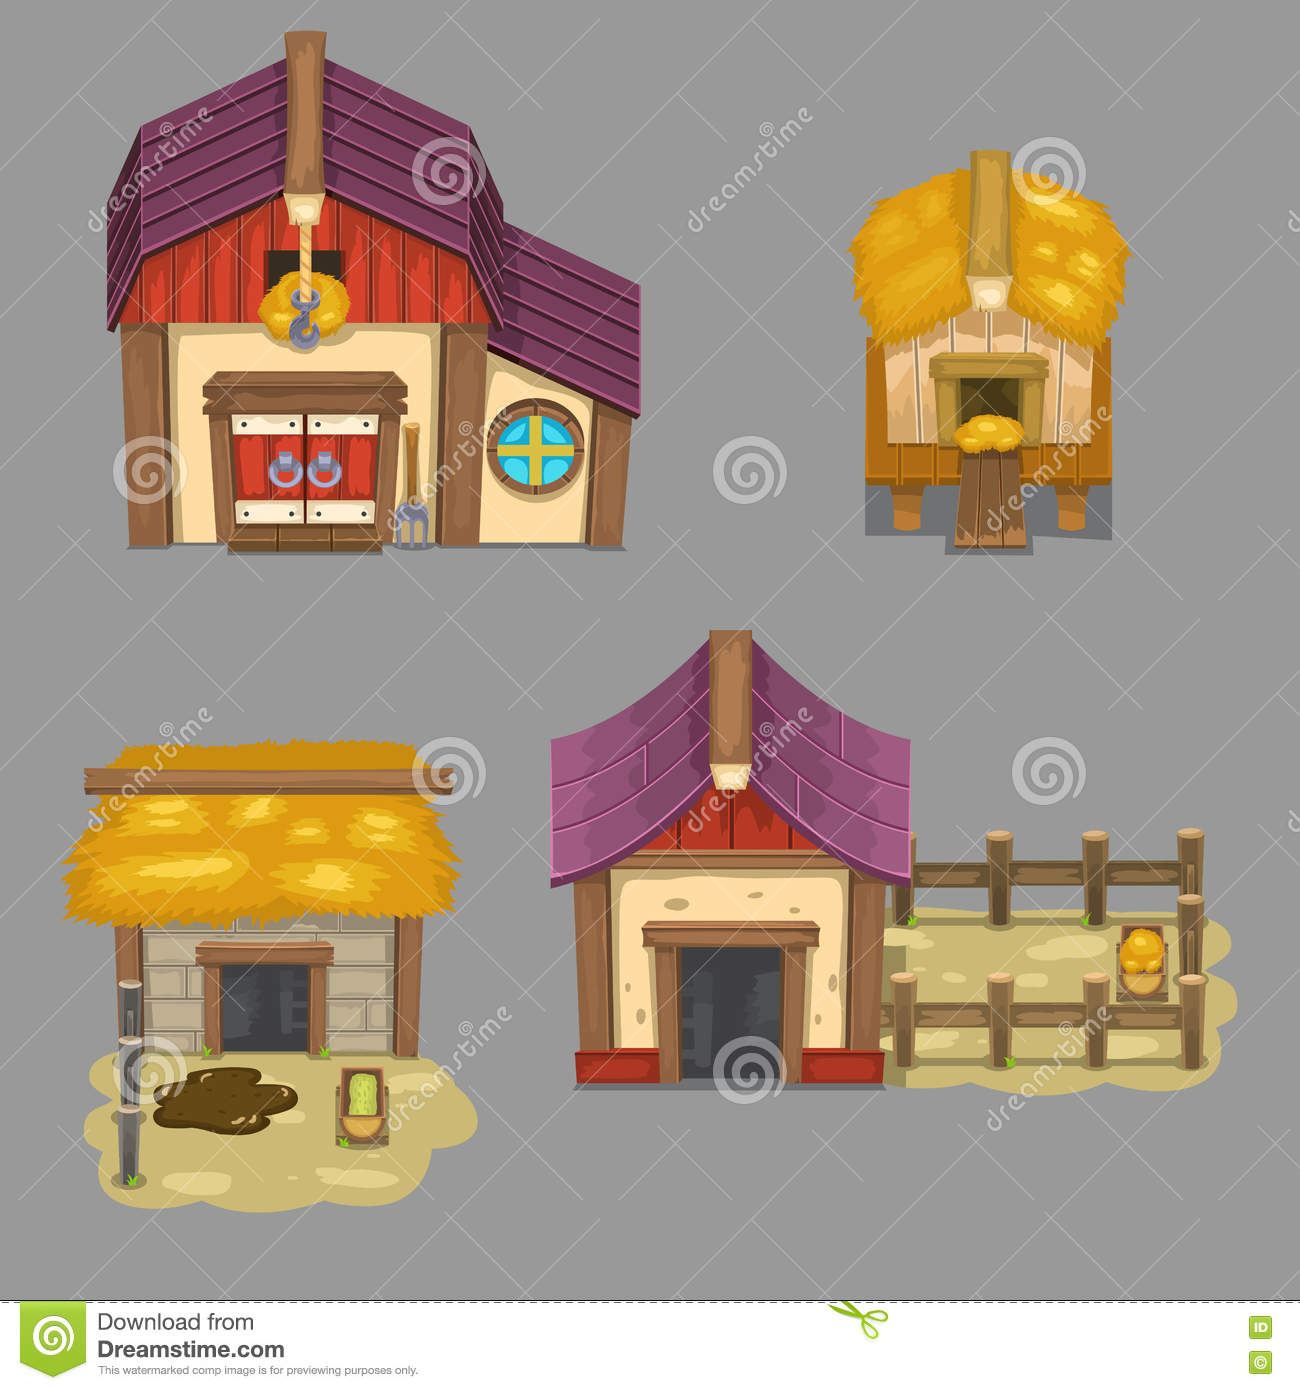 Create your dream house game best gotify create your own for Design your own farm layout